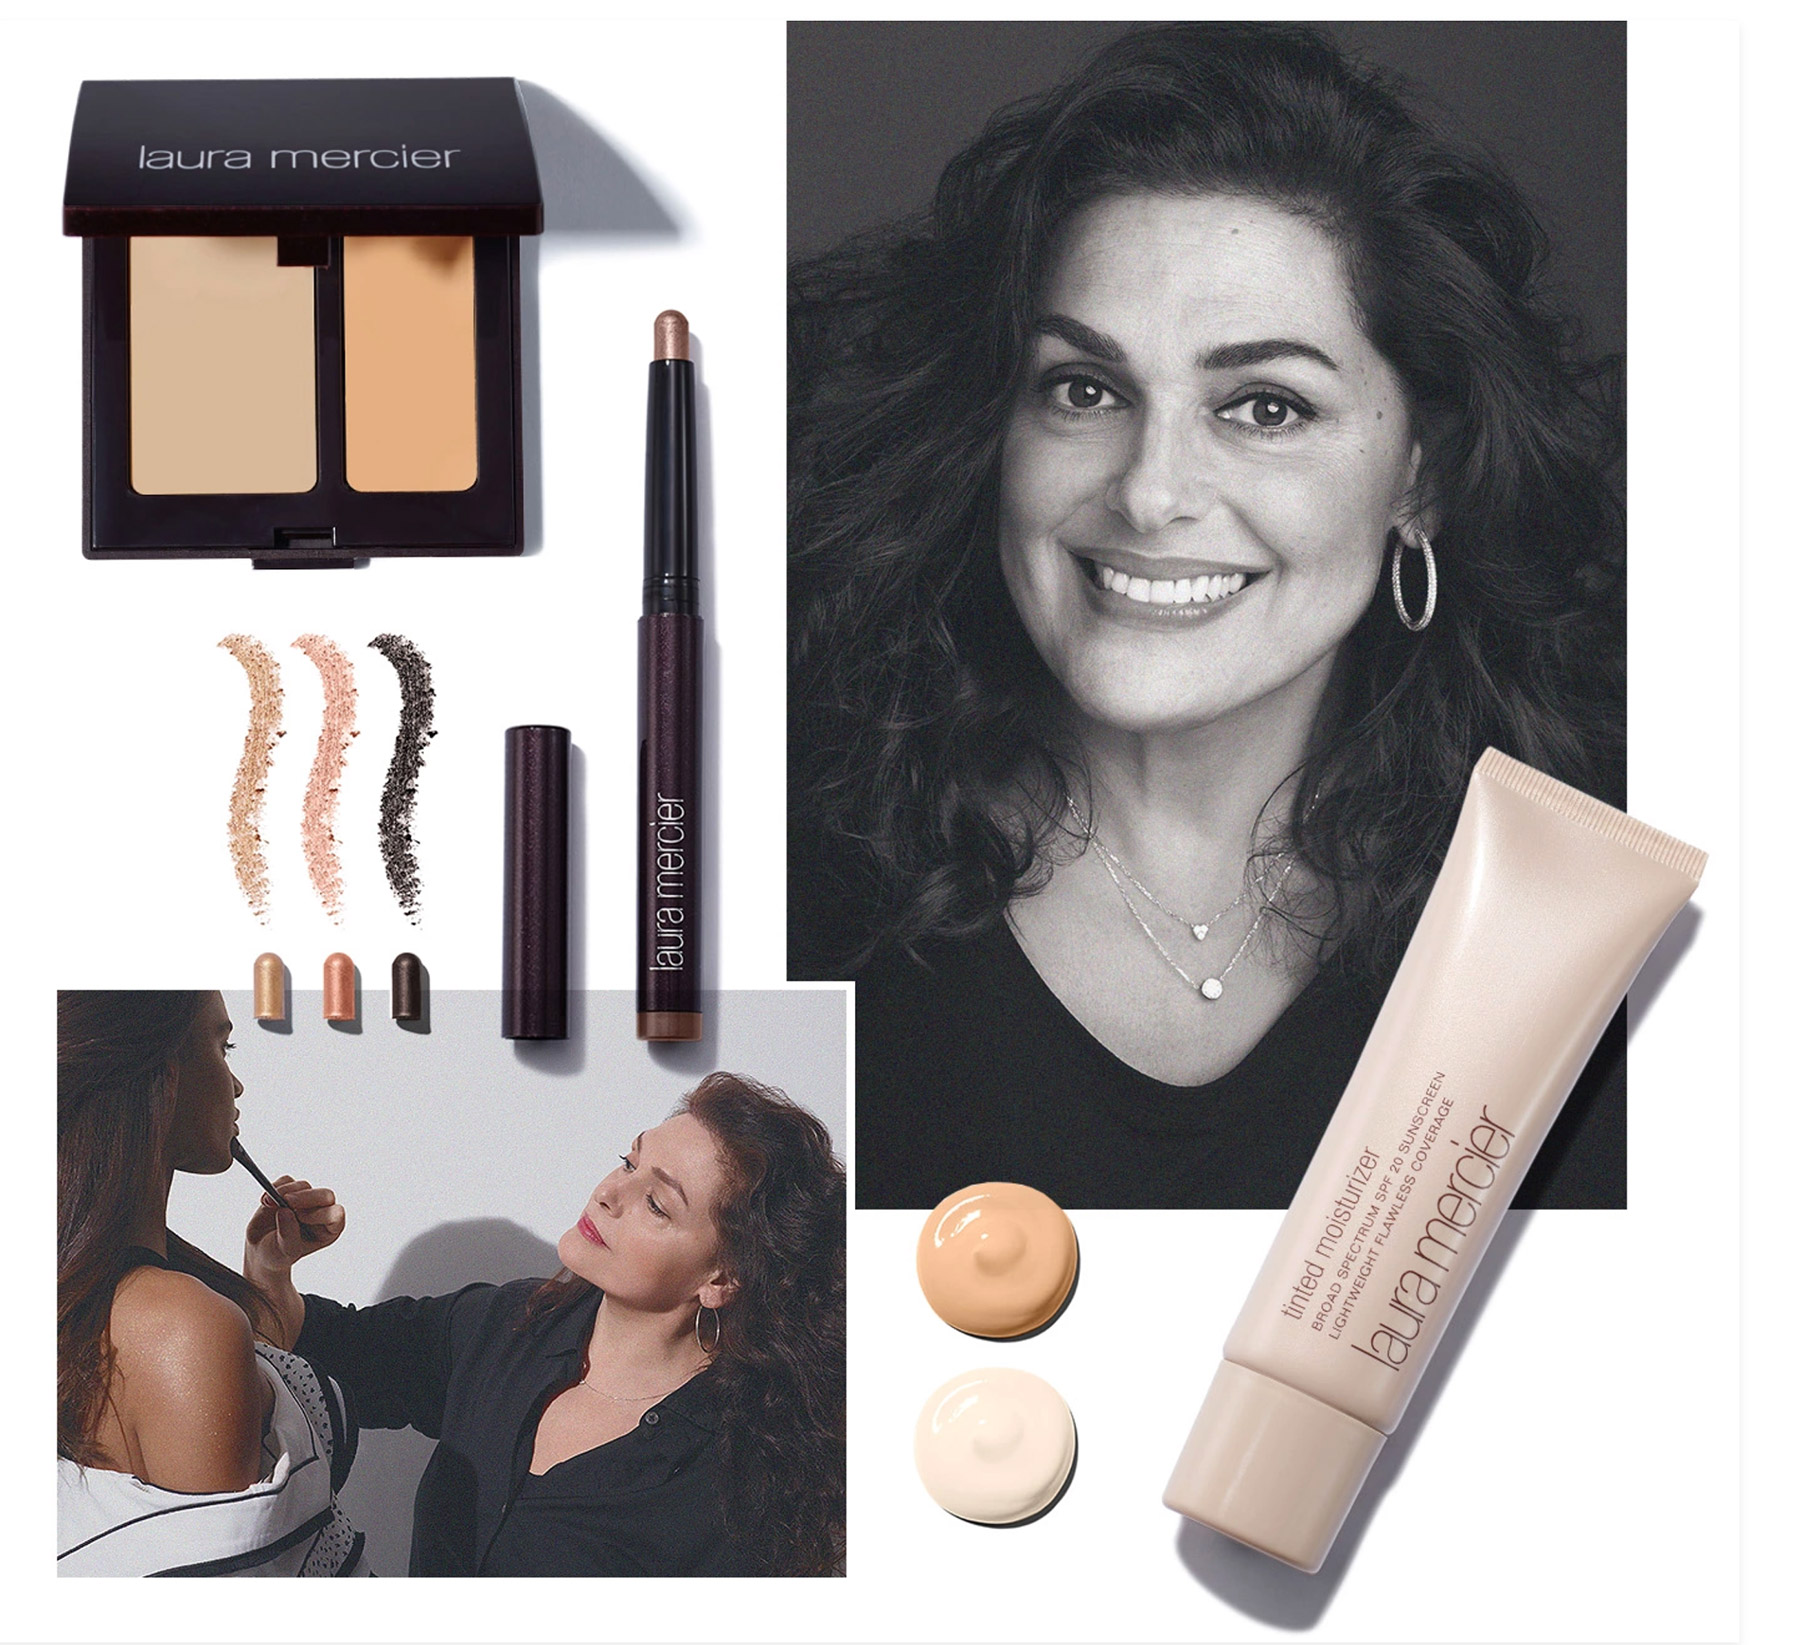 laura-mercier-maquillage